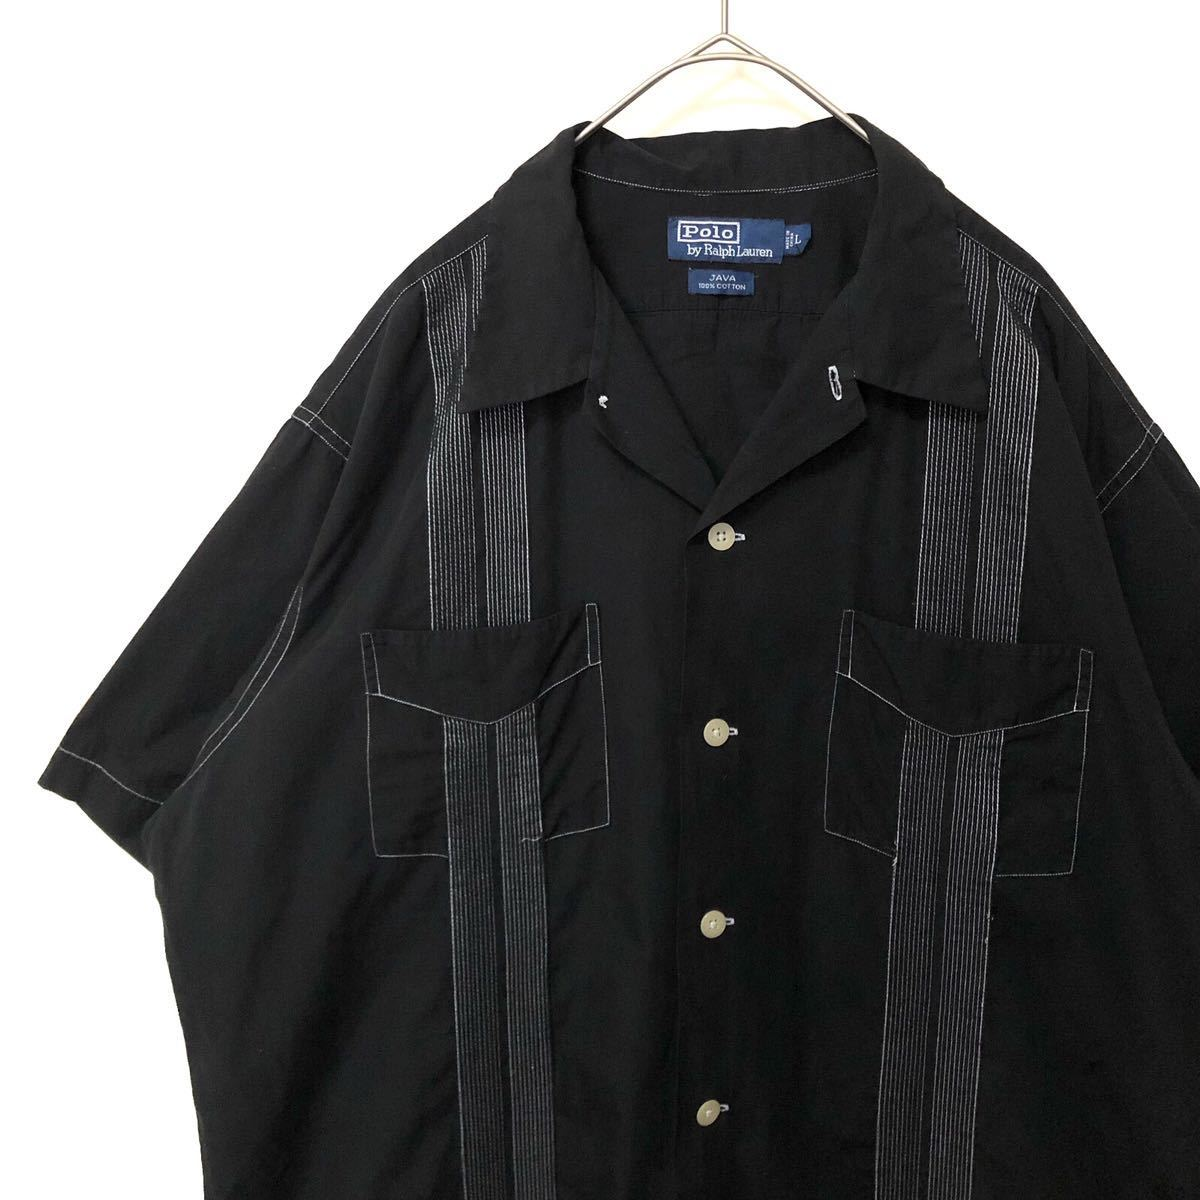 Polo by Ralph Lauren キューバシャツ オープンカラー シャツ Java clayton Caldwell 90s 80s polo country RRL ヴィンテージ ボックス